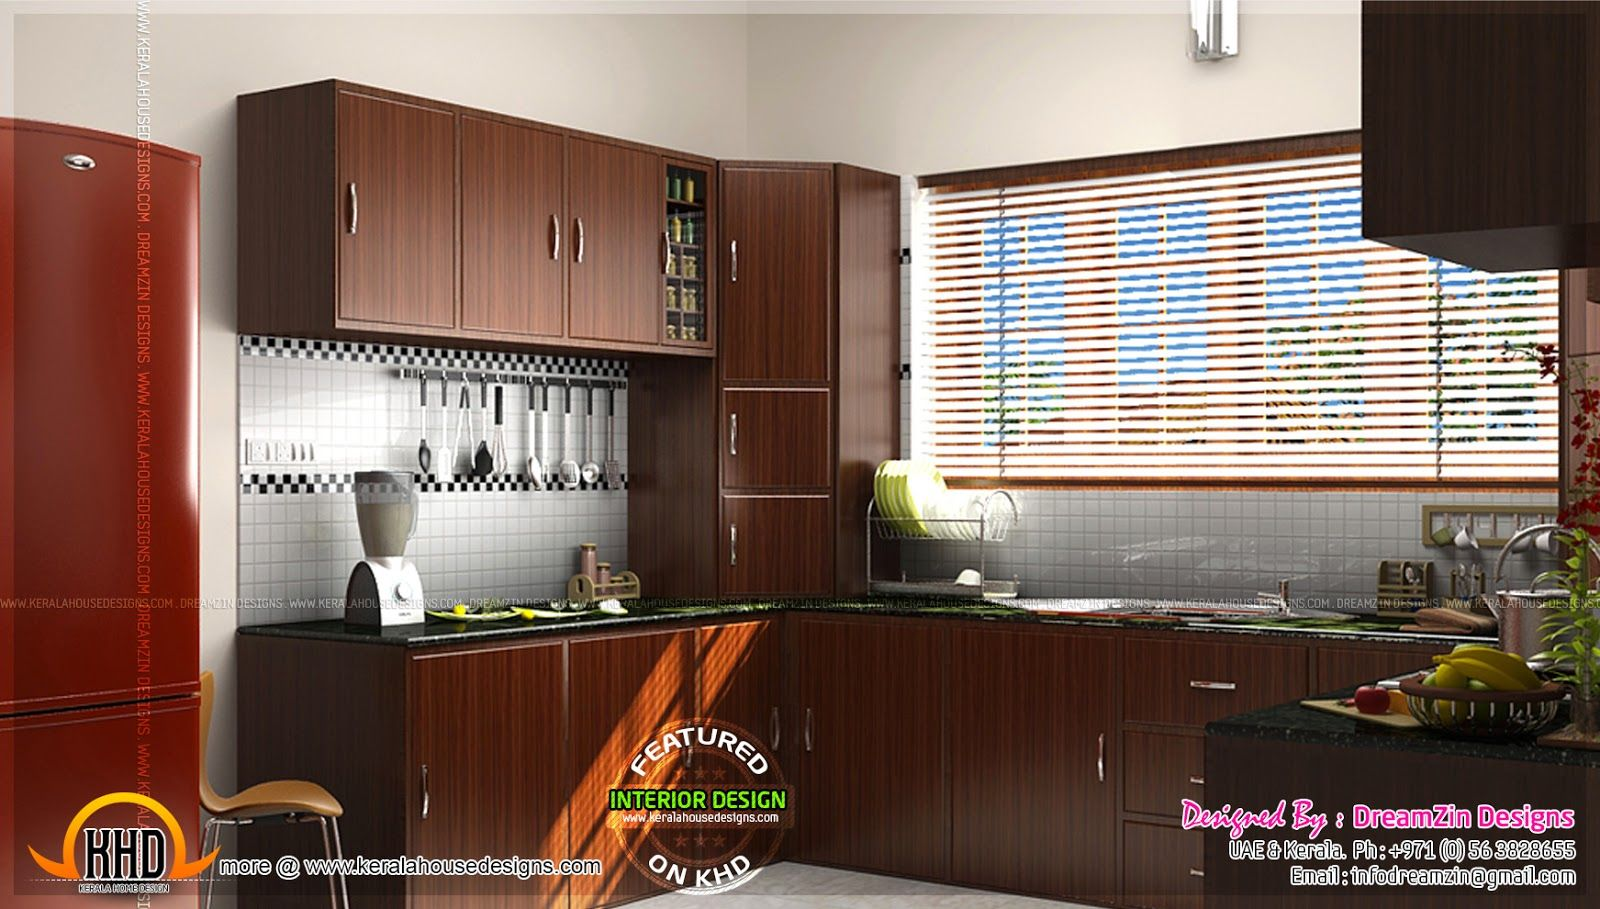 Kerala kitchen interior design modular kitchen kerala for Kerala homes interior designs